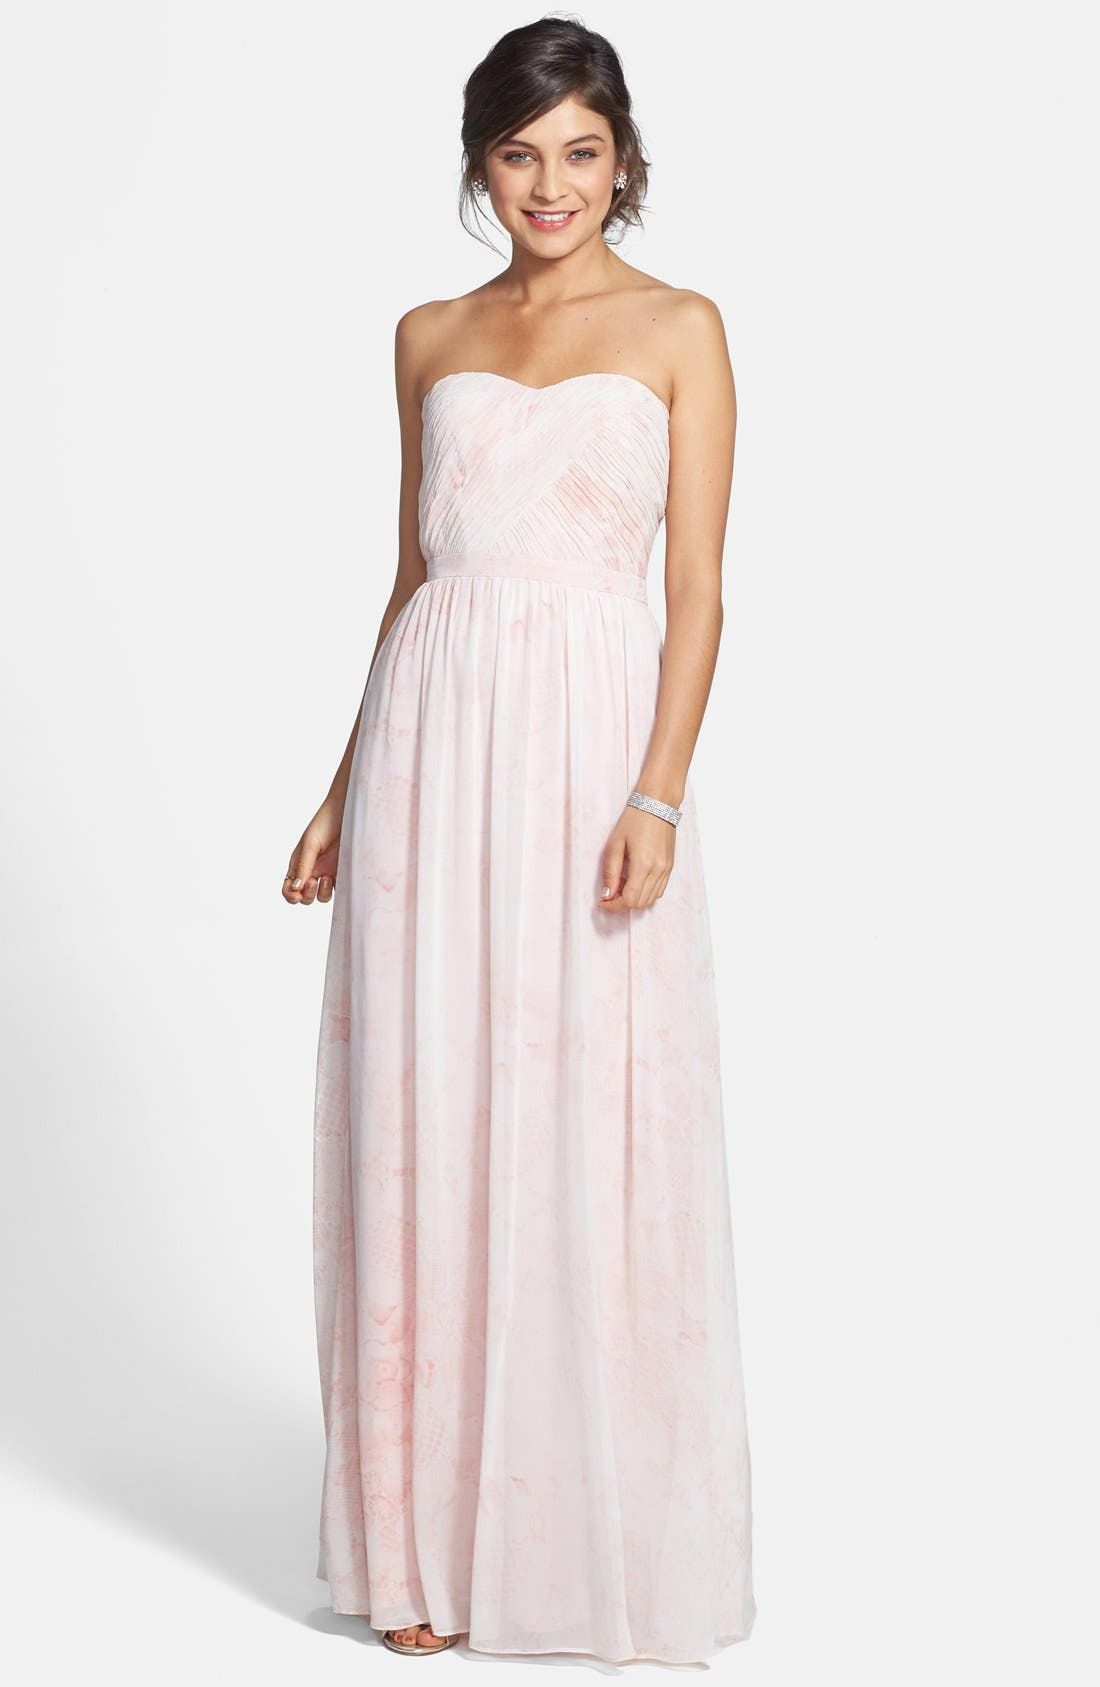 Alternate Image 1 Selected - ERIN erin fetherston 'Rose' Print Chiffon Strapless Gown